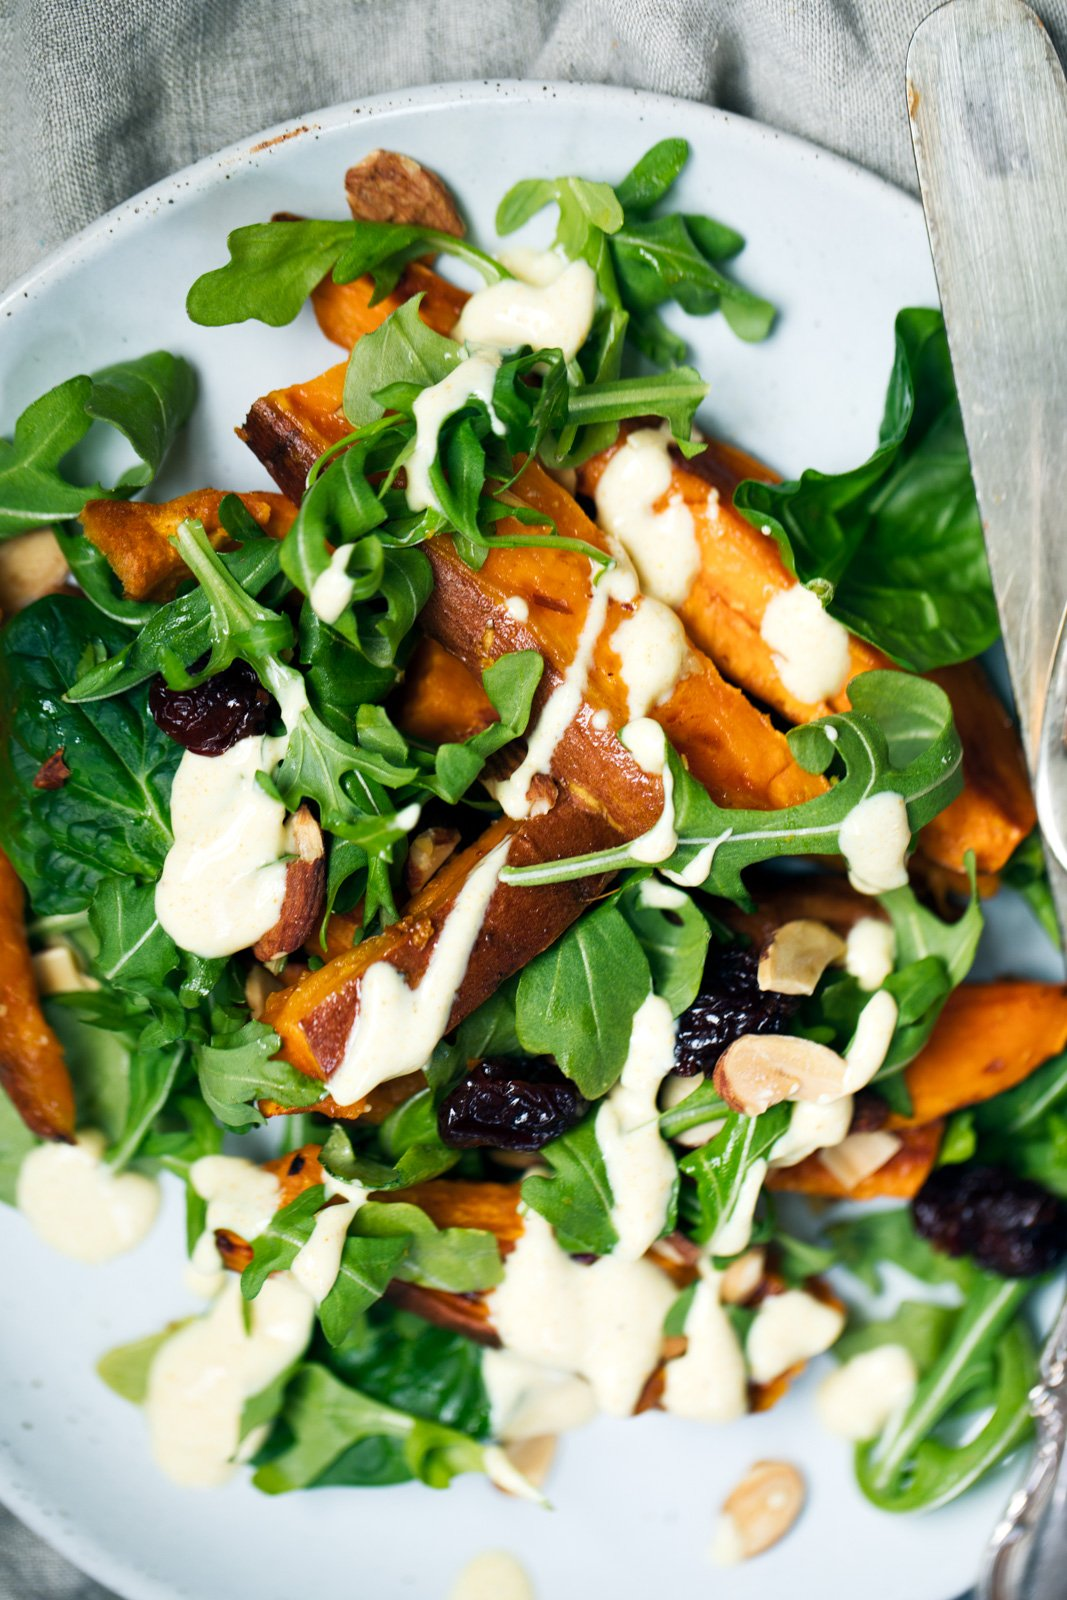 Roasted sweet potato arugula salad on a plate